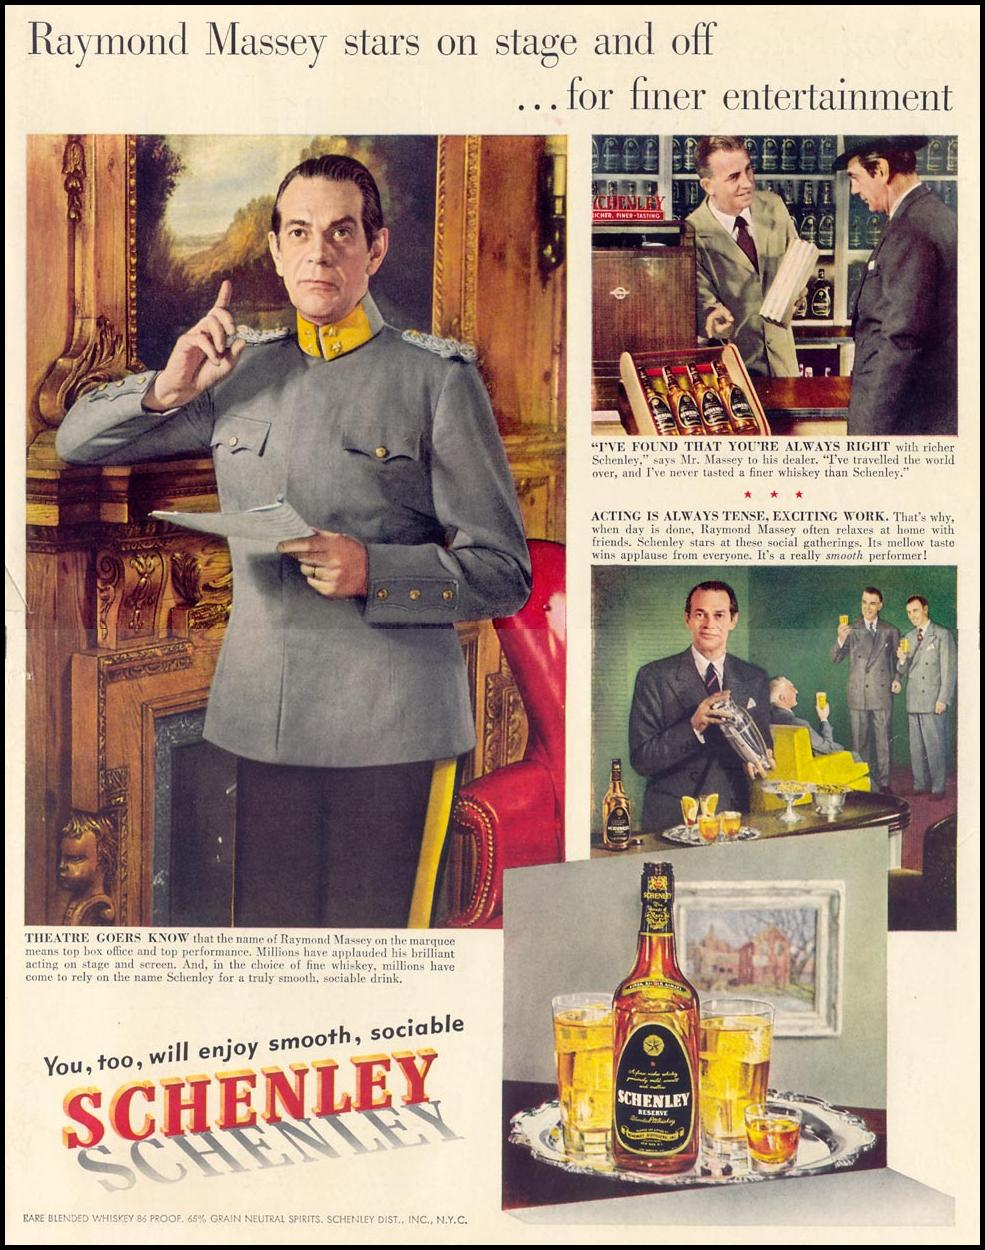 SCHENLEY RESERVE WHISKEY LIFE 04/17/1950 INSIDE BACK